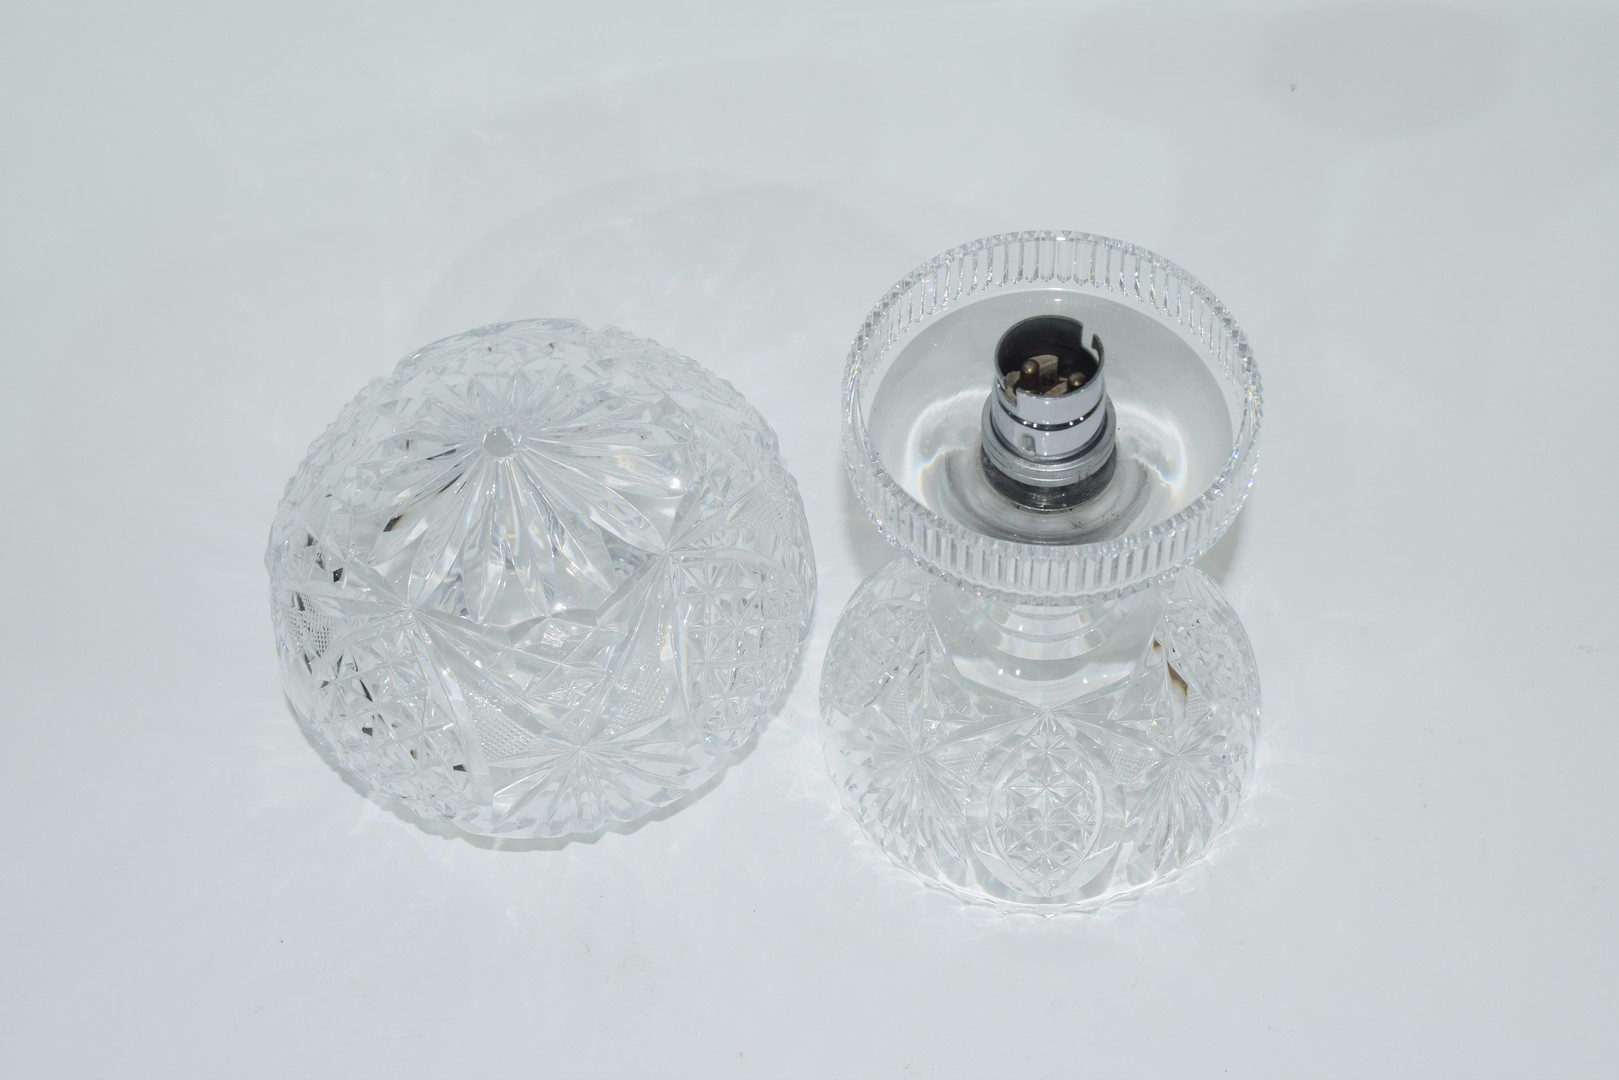 Cut glass lamp and shade - Image 5 of 5